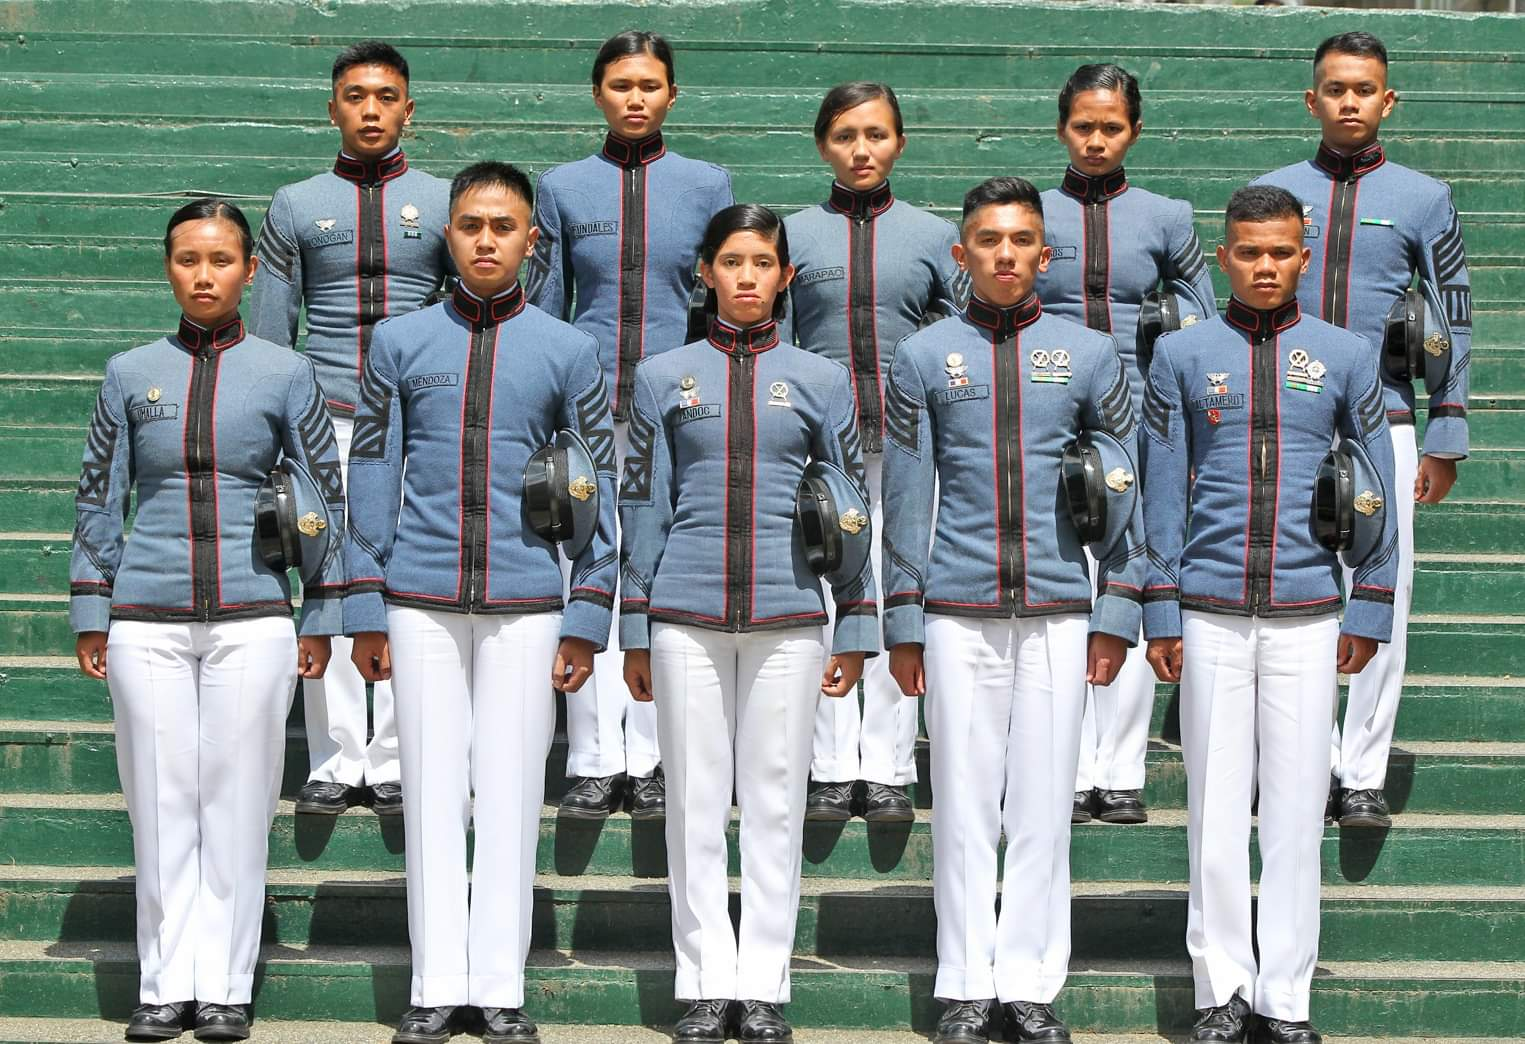 MABALASIK. The Top 10 of Philippine Military Academy's (PMA) Mabalasik Class of 2019. A total of 263 cadets will graduate from the PMA on Sunday, May 26. Photo by Mau Victa/Rappler